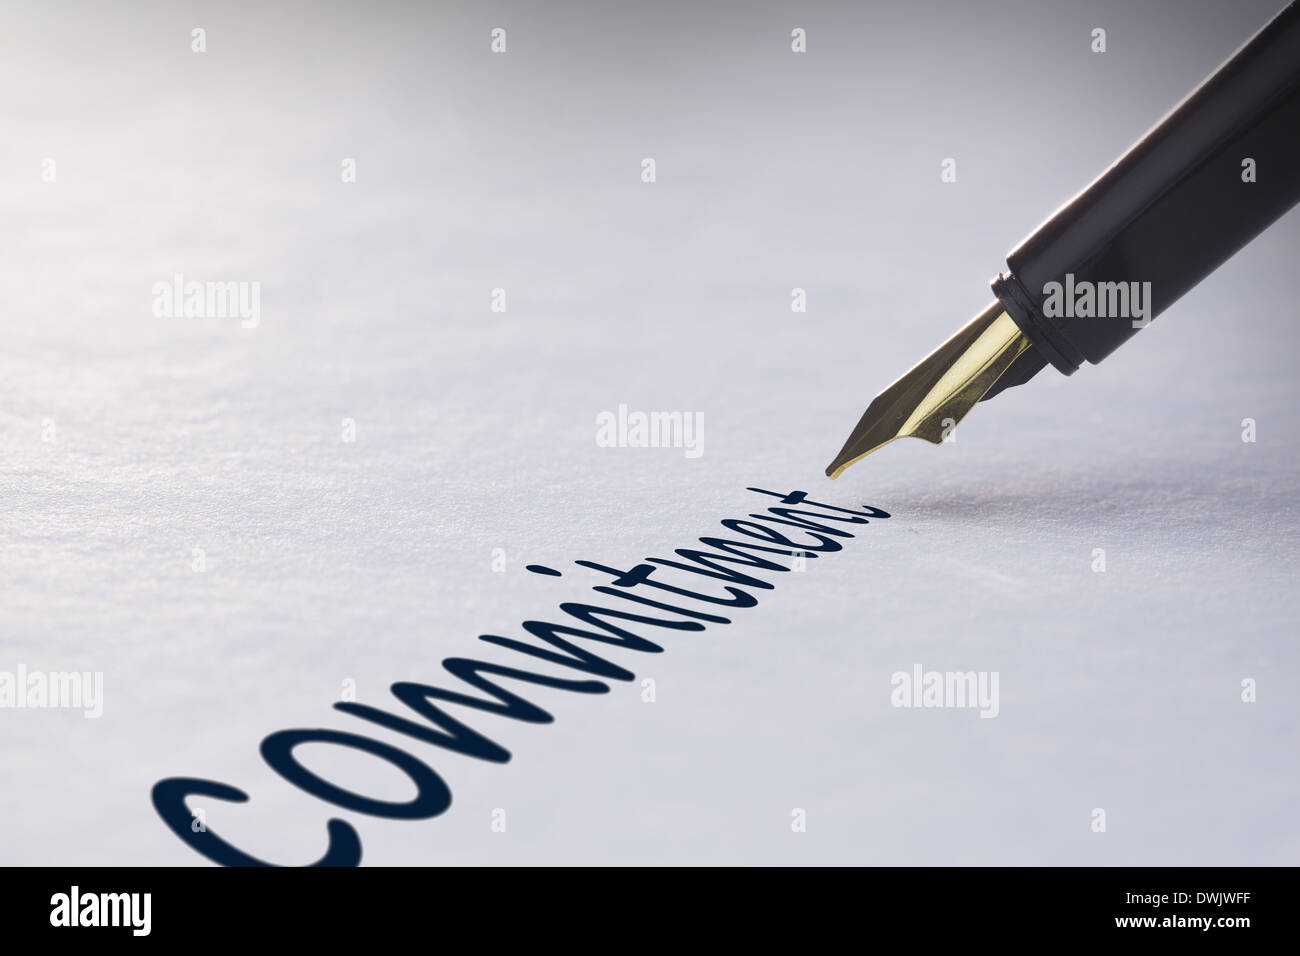 Fountain pen writing Commitment - Stock Image